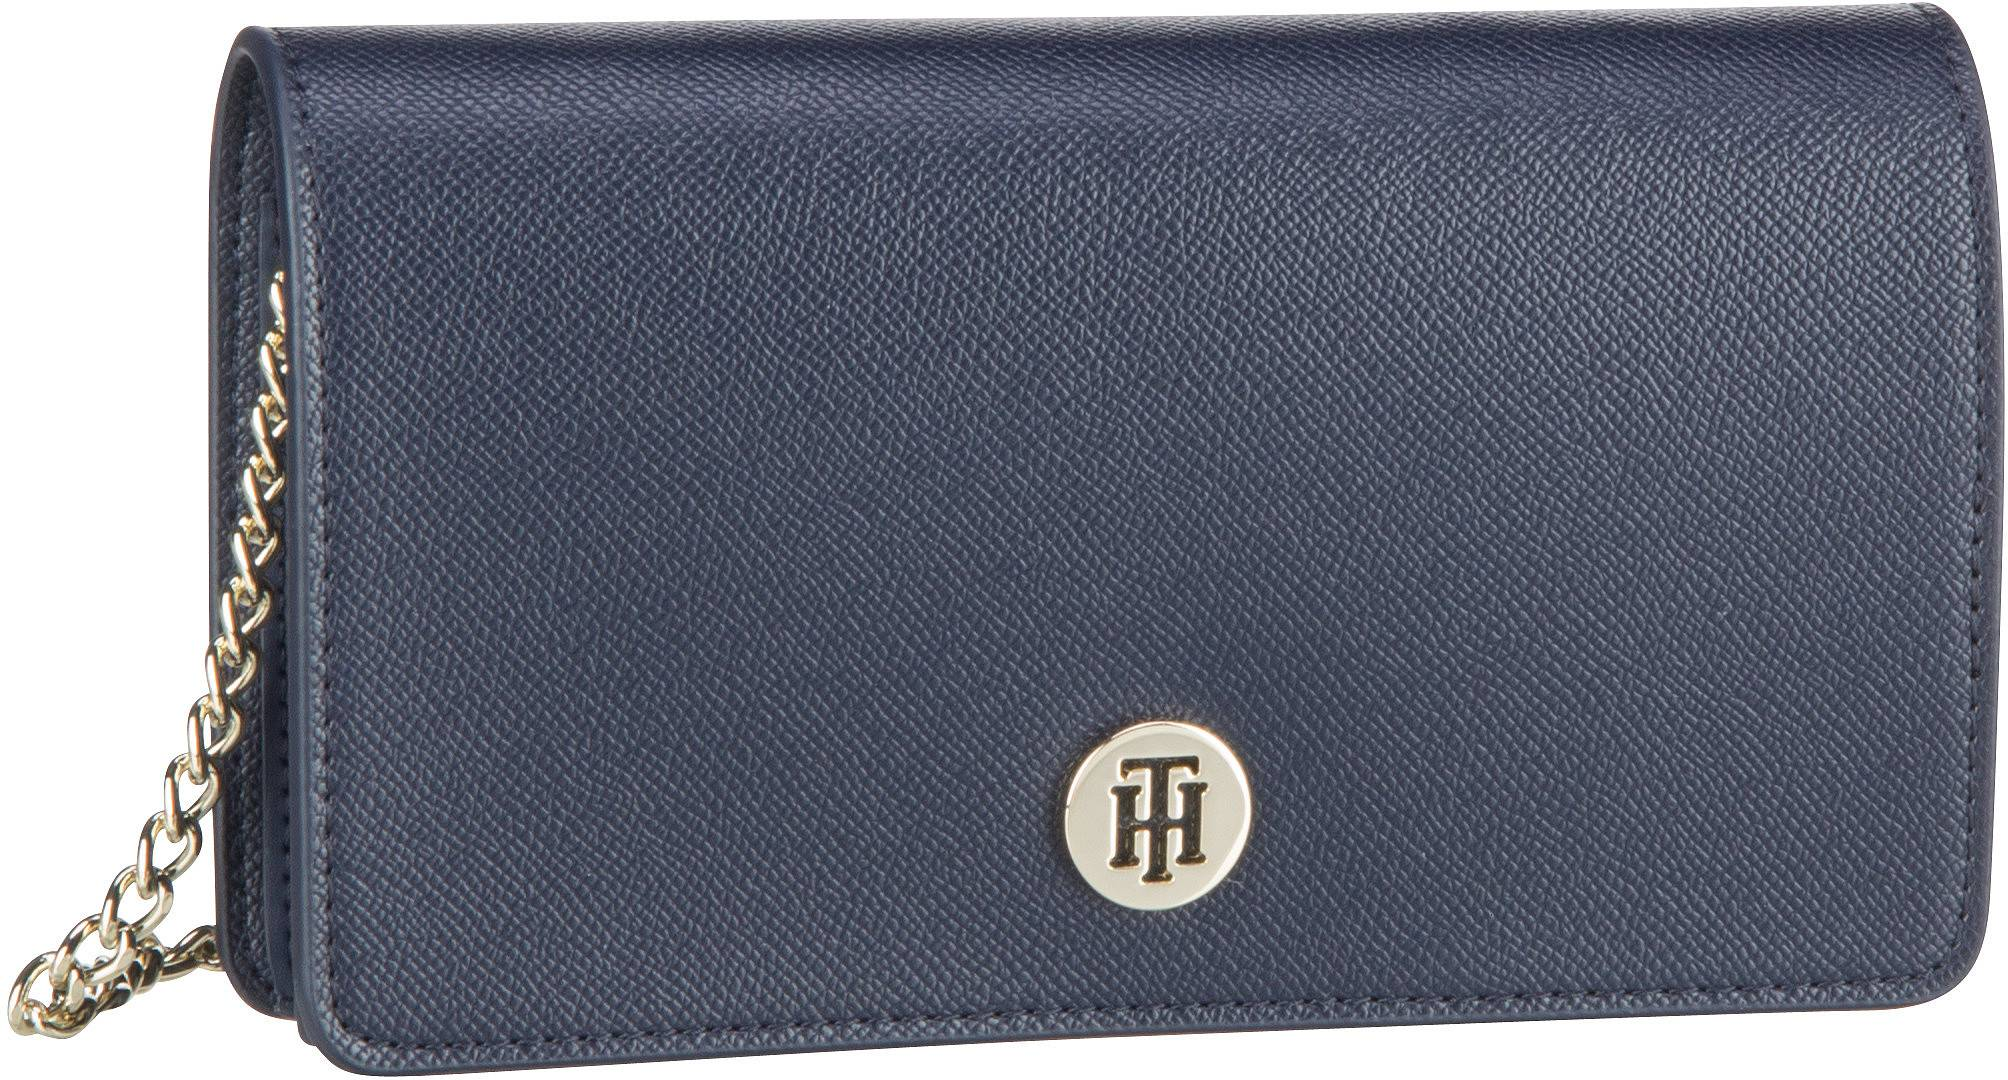 Clutches - Tommy Hilfiger Abendtasche Clutch Honey Mini Crossover SP20 Sky Captain  - Onlineshop Taschenkaufhaus